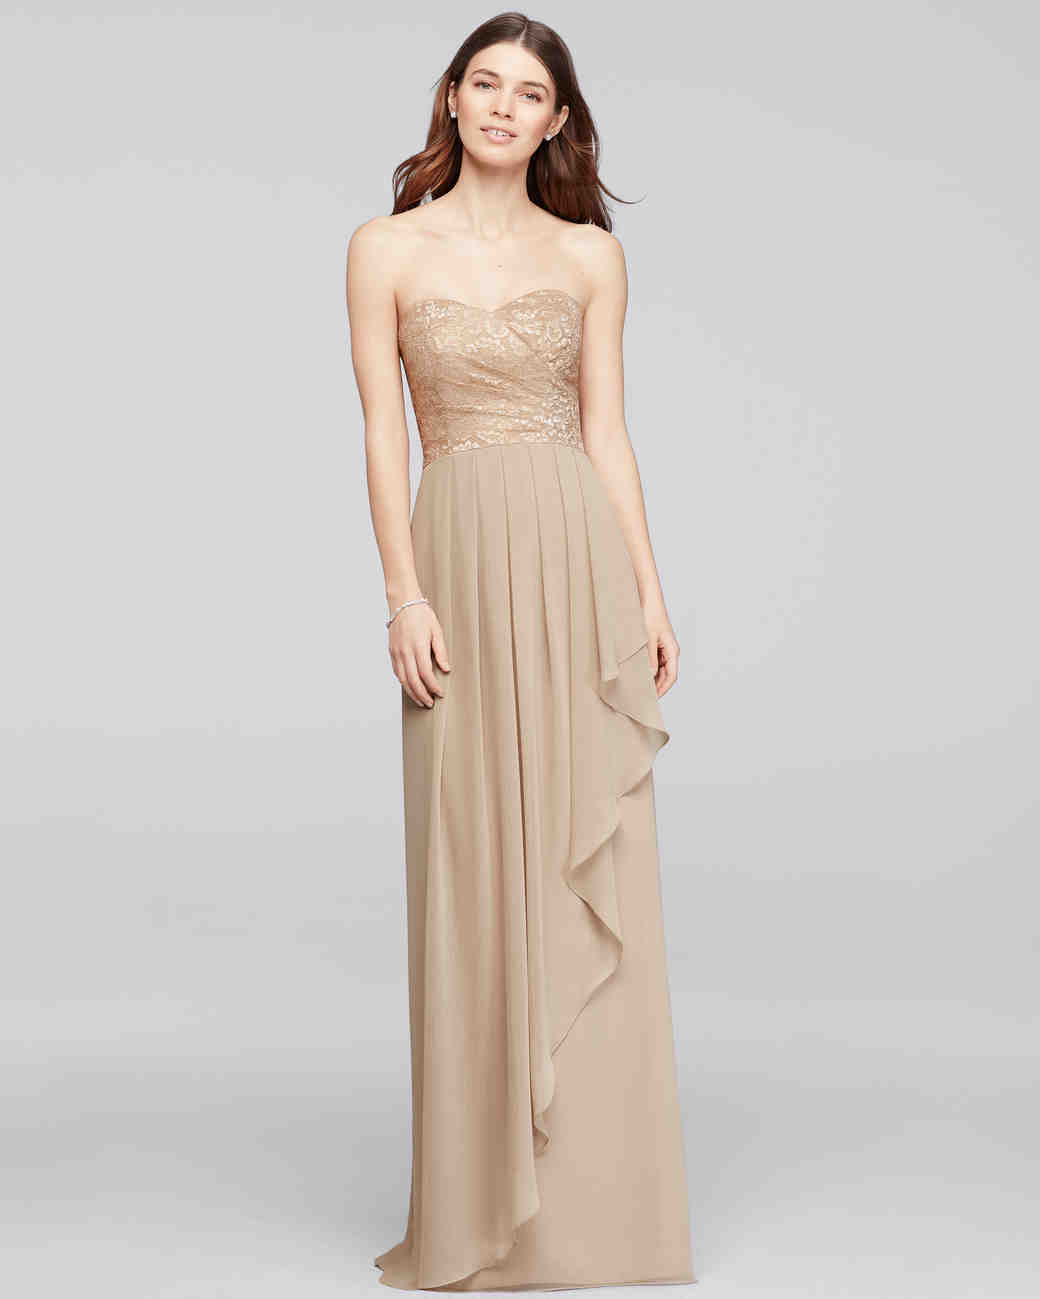 David's Bridal Chiffon Bridesmaid Dress